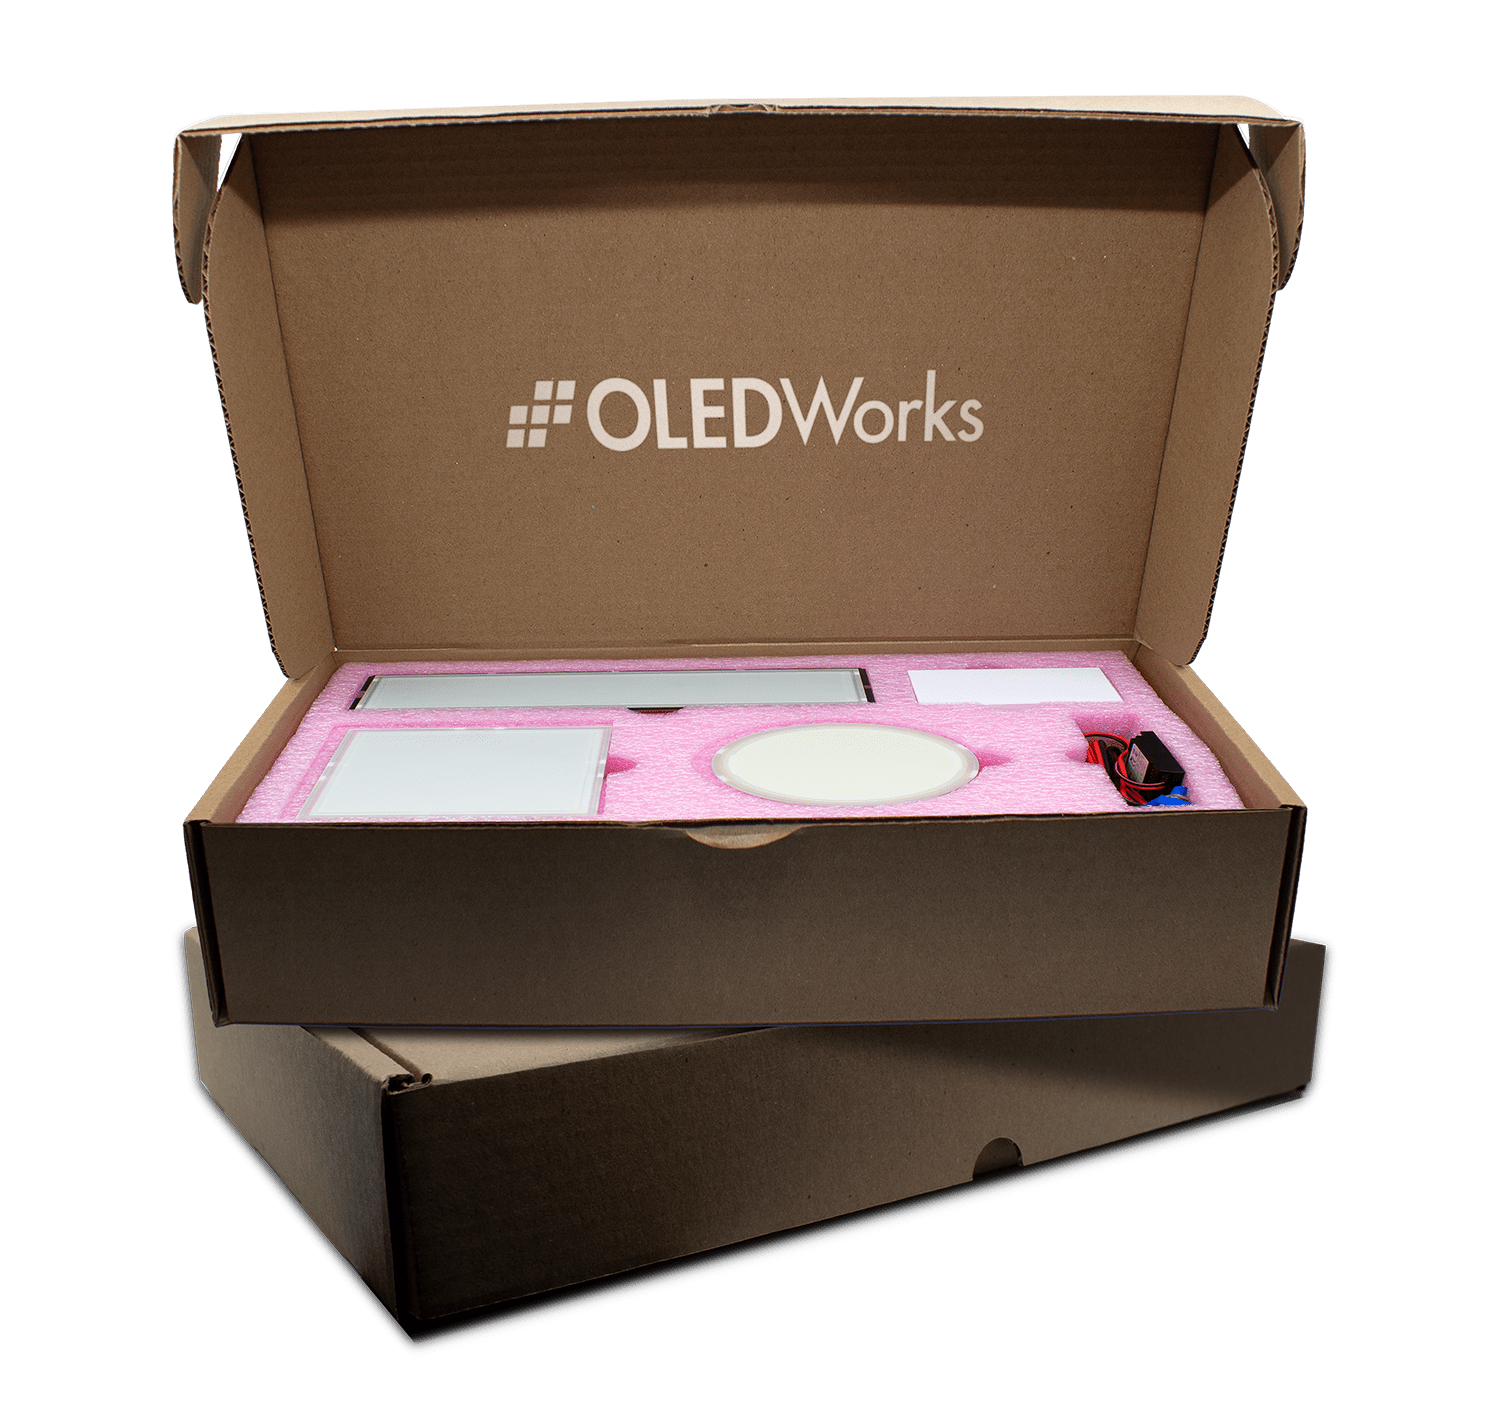 oledworks developers kit box